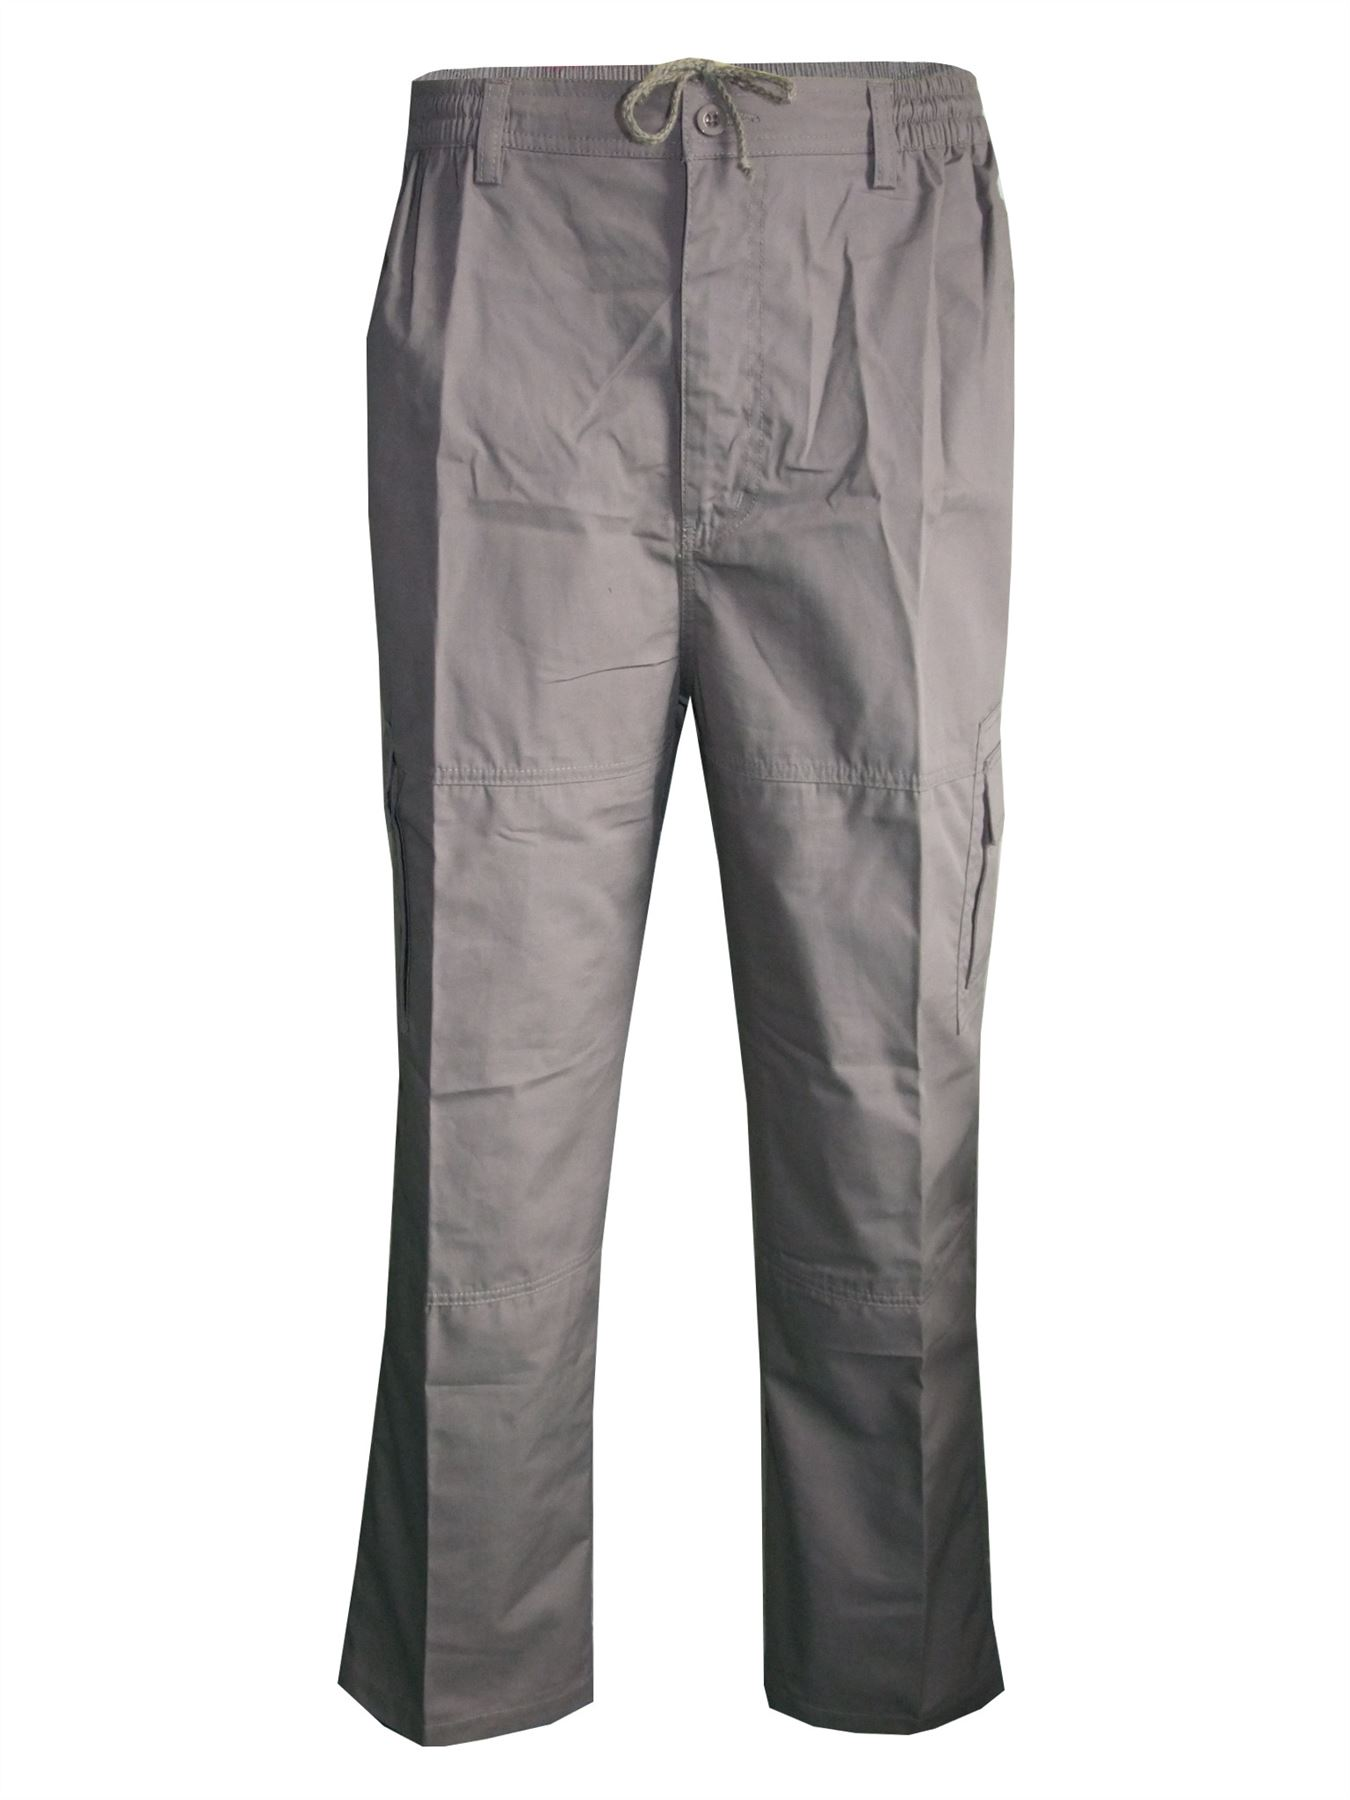 Men-Straight-Trousers-Cargo-Combat-Cotton-Elasticated-Zip-Fly-Casual-Pants-M-3XL thumbnail 13